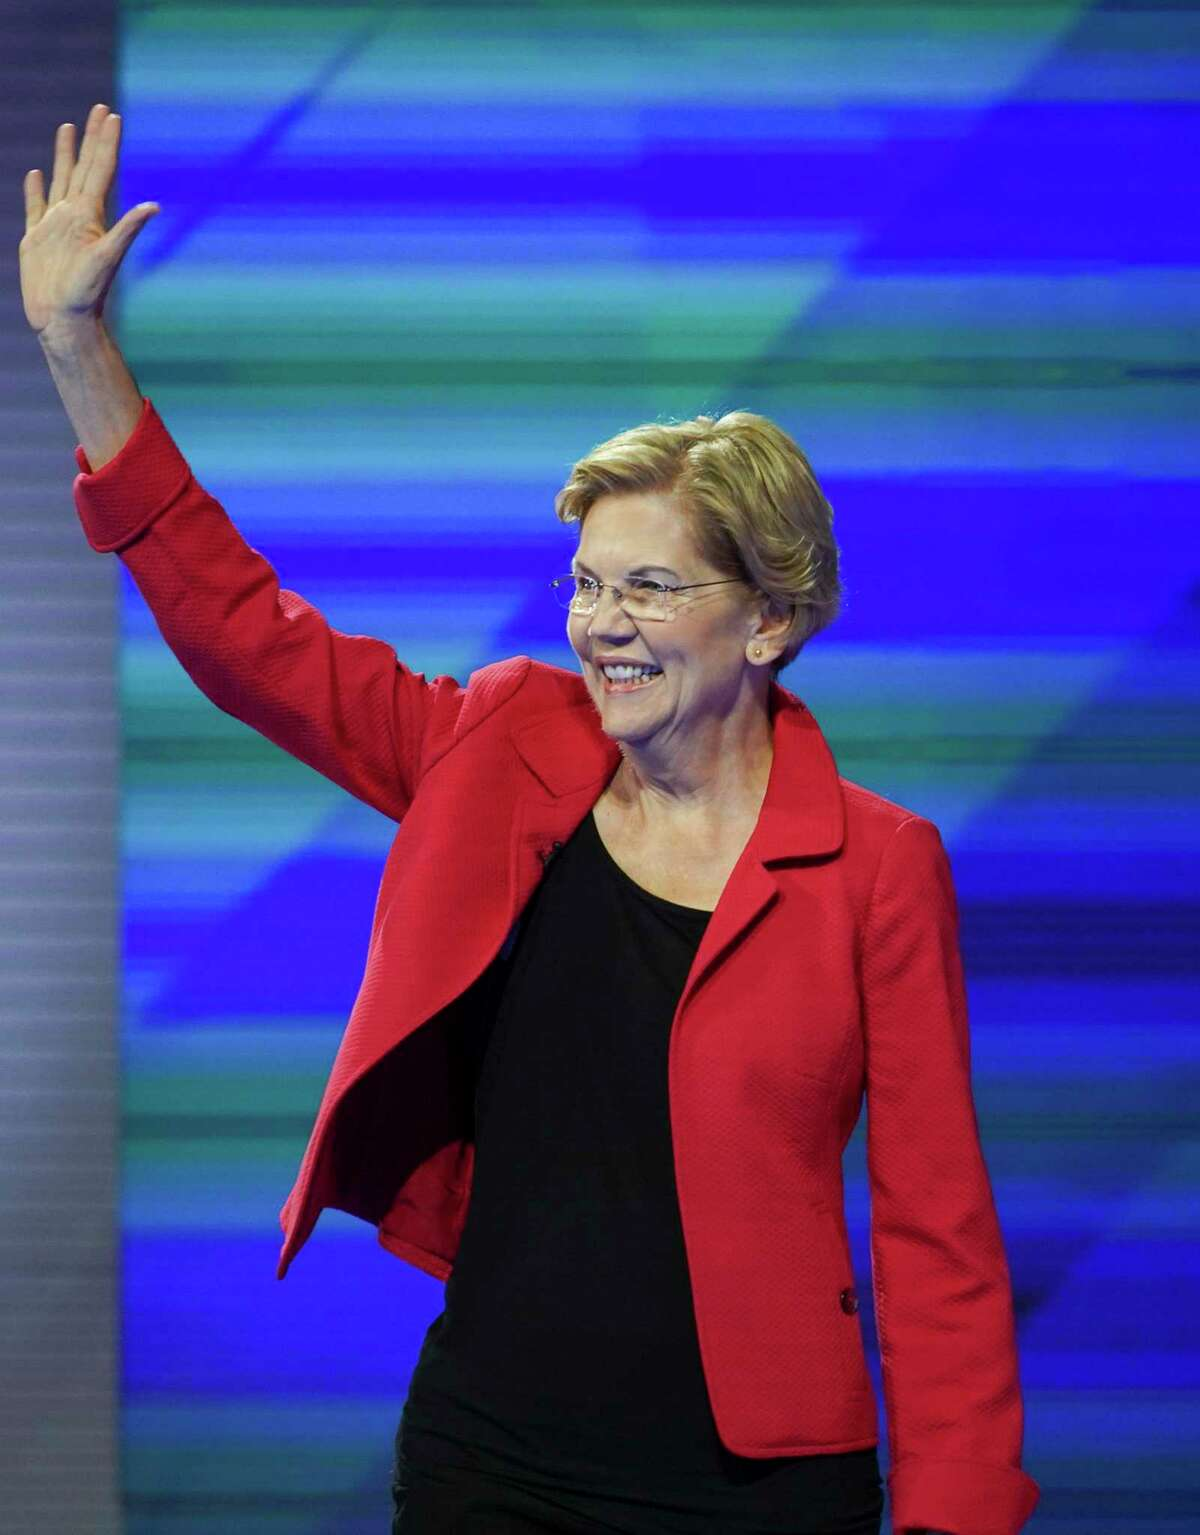 Democratic presidential candidate Sen. Elizabeth Warren, D-Mass., takes the stage for the Democratic Debate at Texas Southern University's Health & Physical Education Center Thursday, Sept. 12, 2019, in Houston.